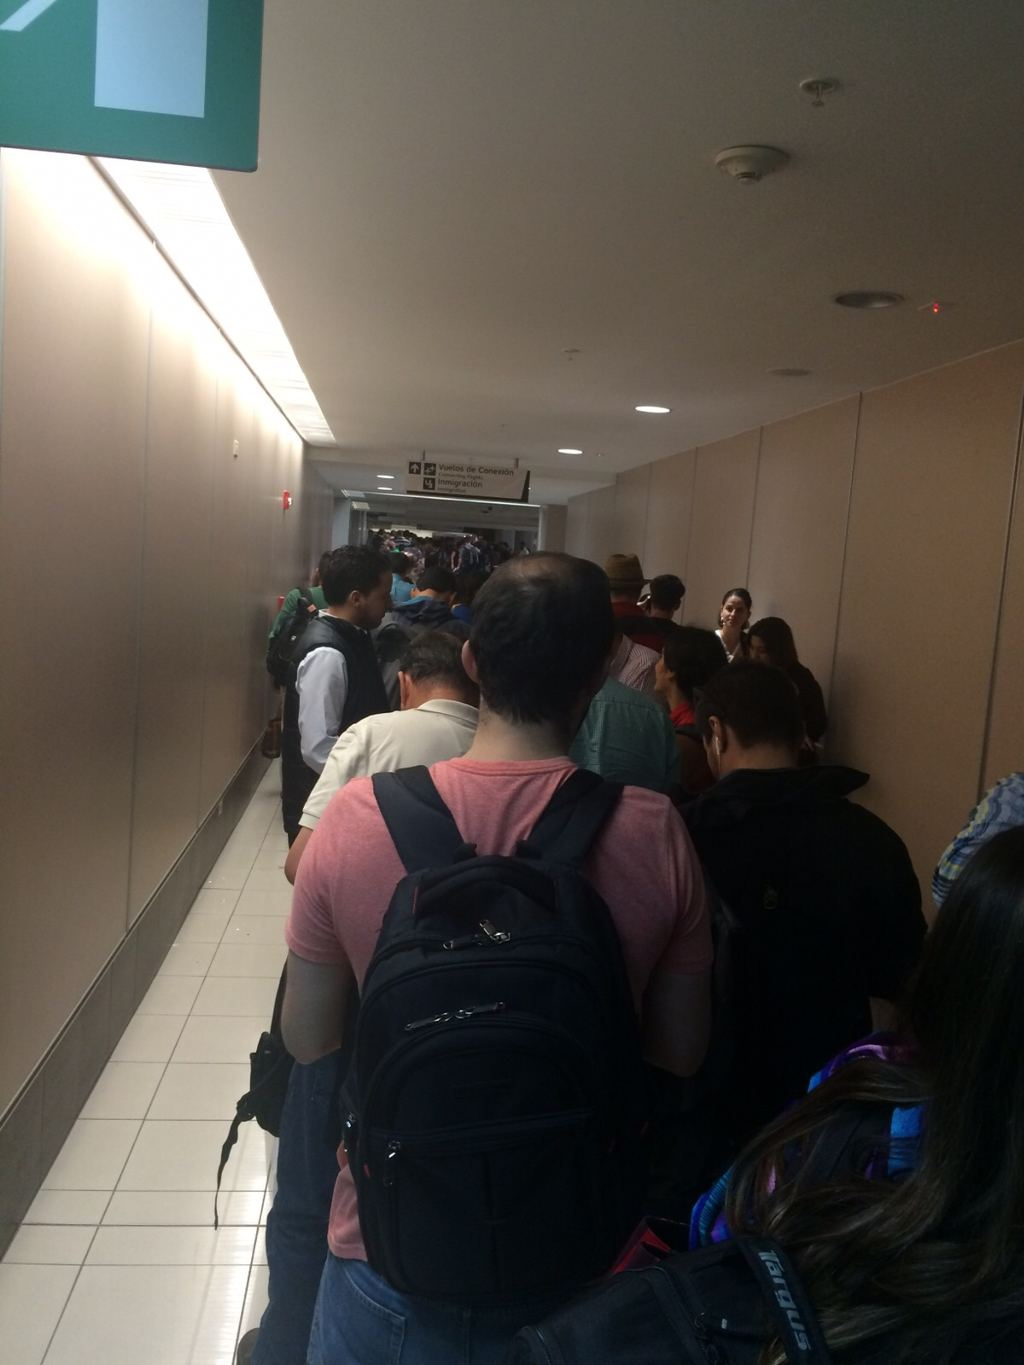 The lines extended to the corridors leading to the arrivals hall